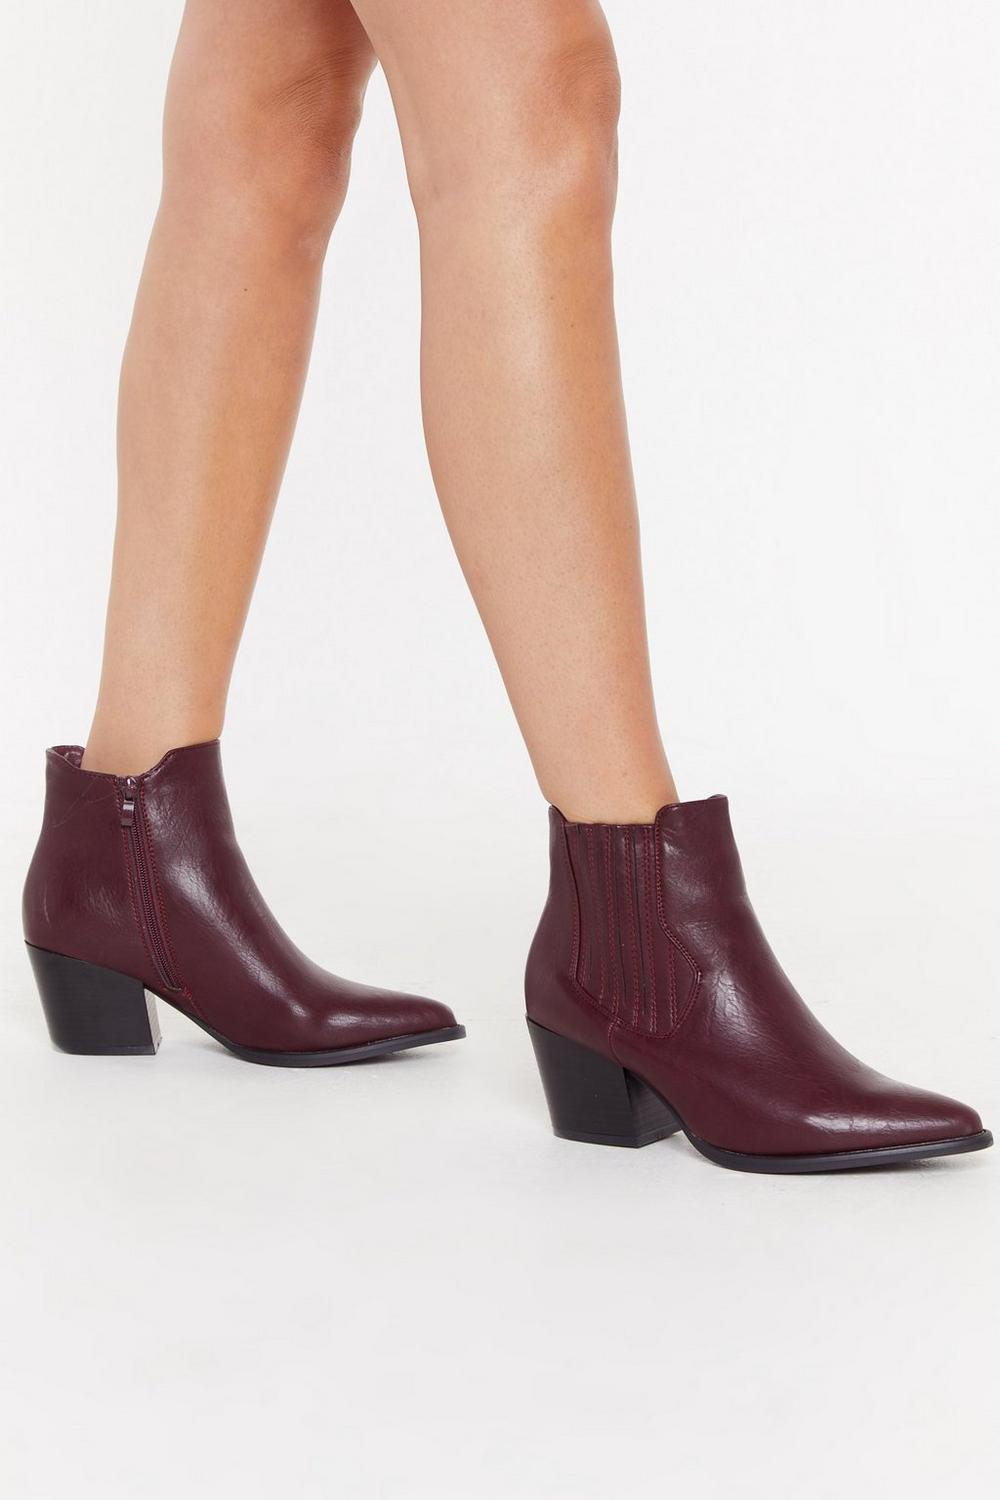 13625425914 Journey to the Western Chelsea Boots | Shop Clothes at Nasty Gal!